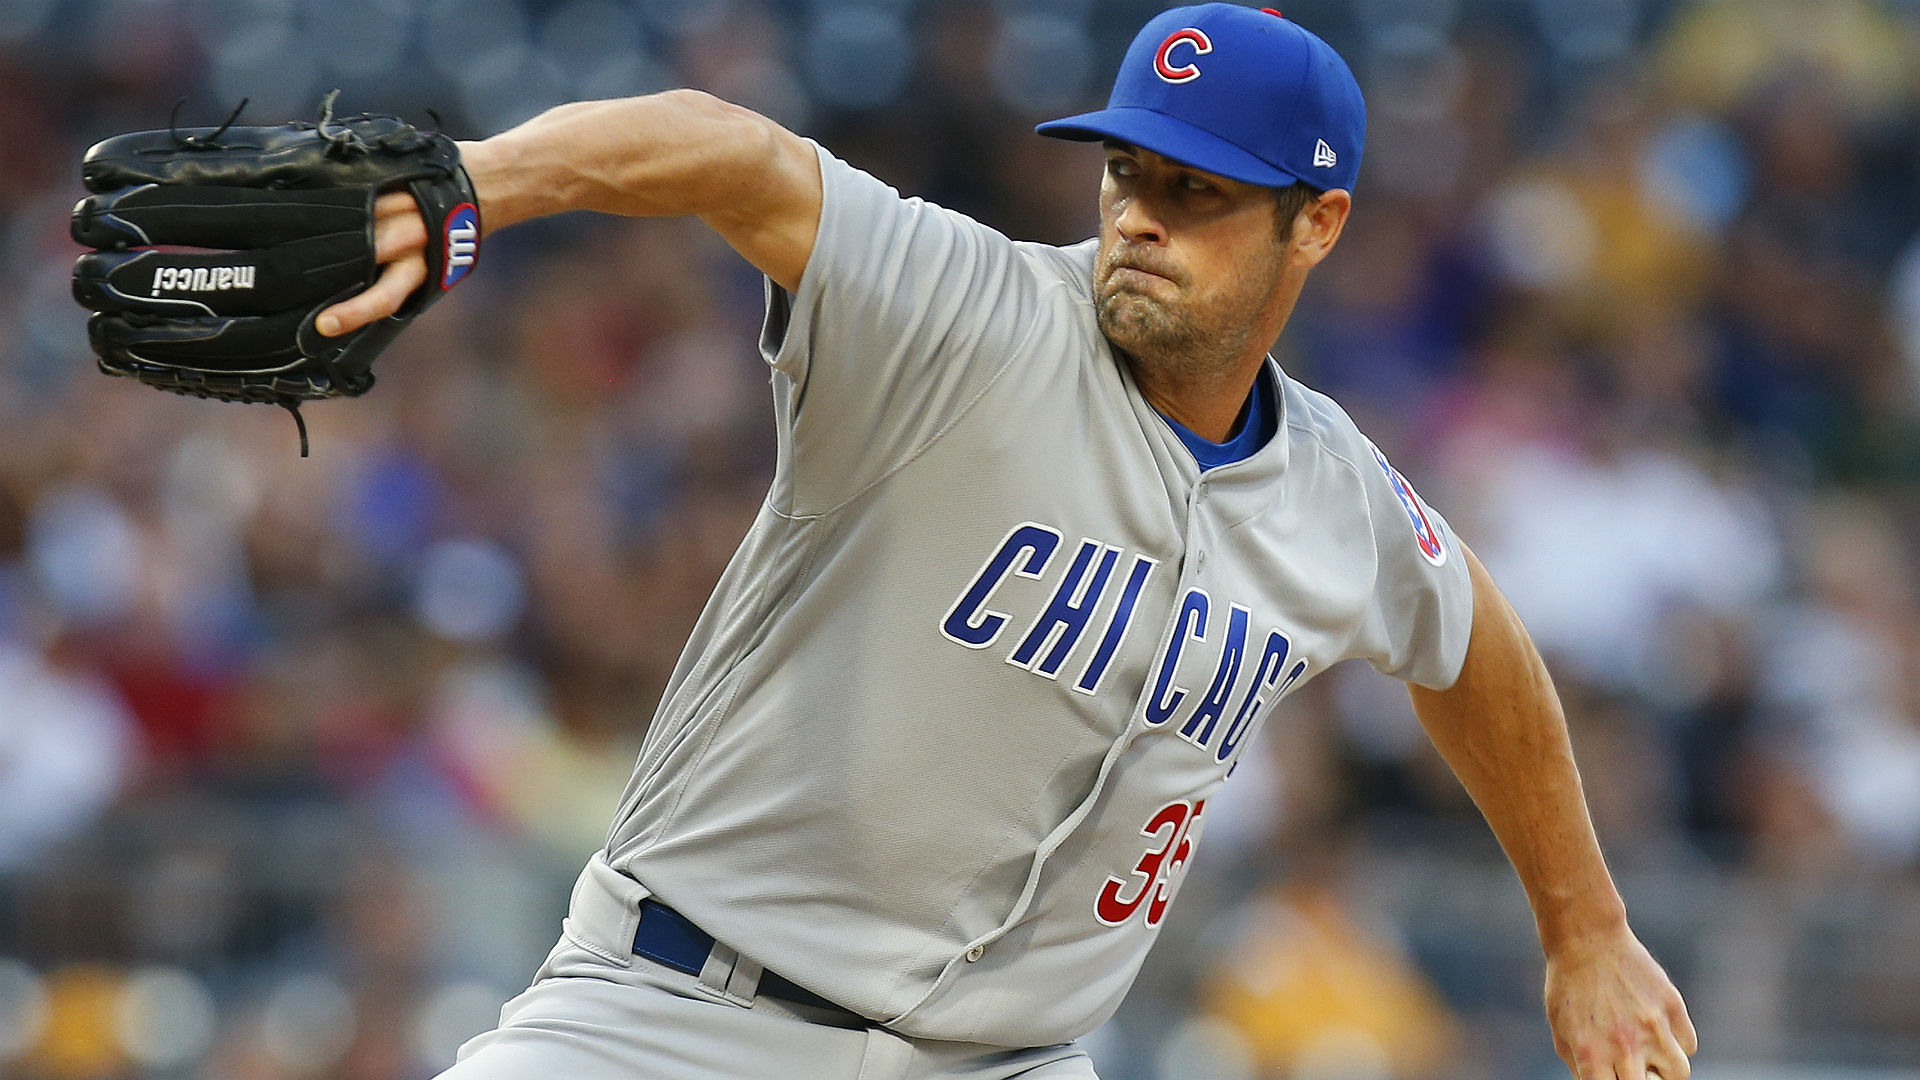 Cubs activate left-hander Cole Hamels from paternity list